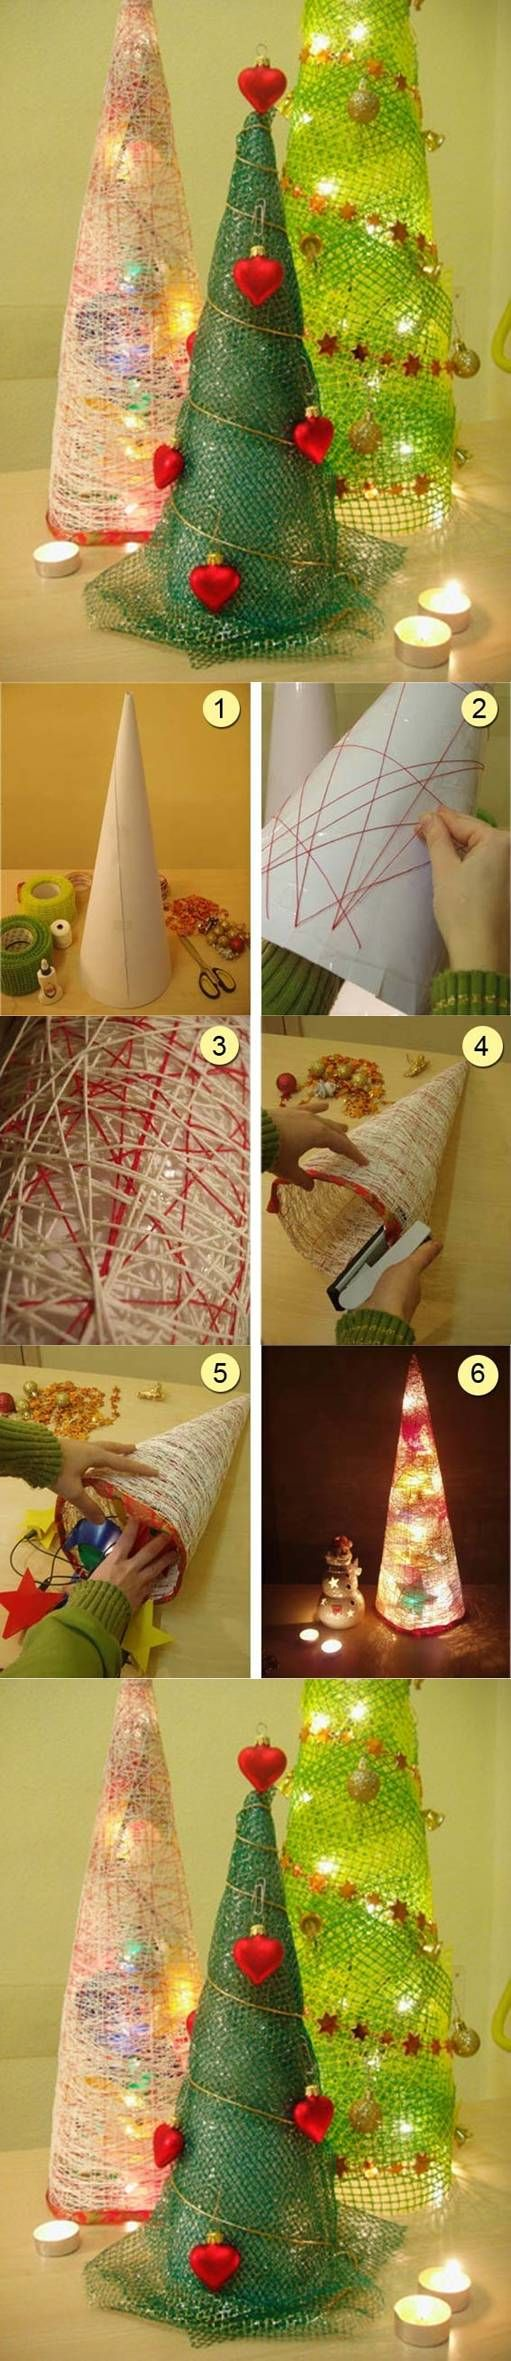 DIY String Christmas Tree DIY Projects | UsefulDIY.com Follow us on Facebook ==> https://www.facebook.com/UsefulDiy